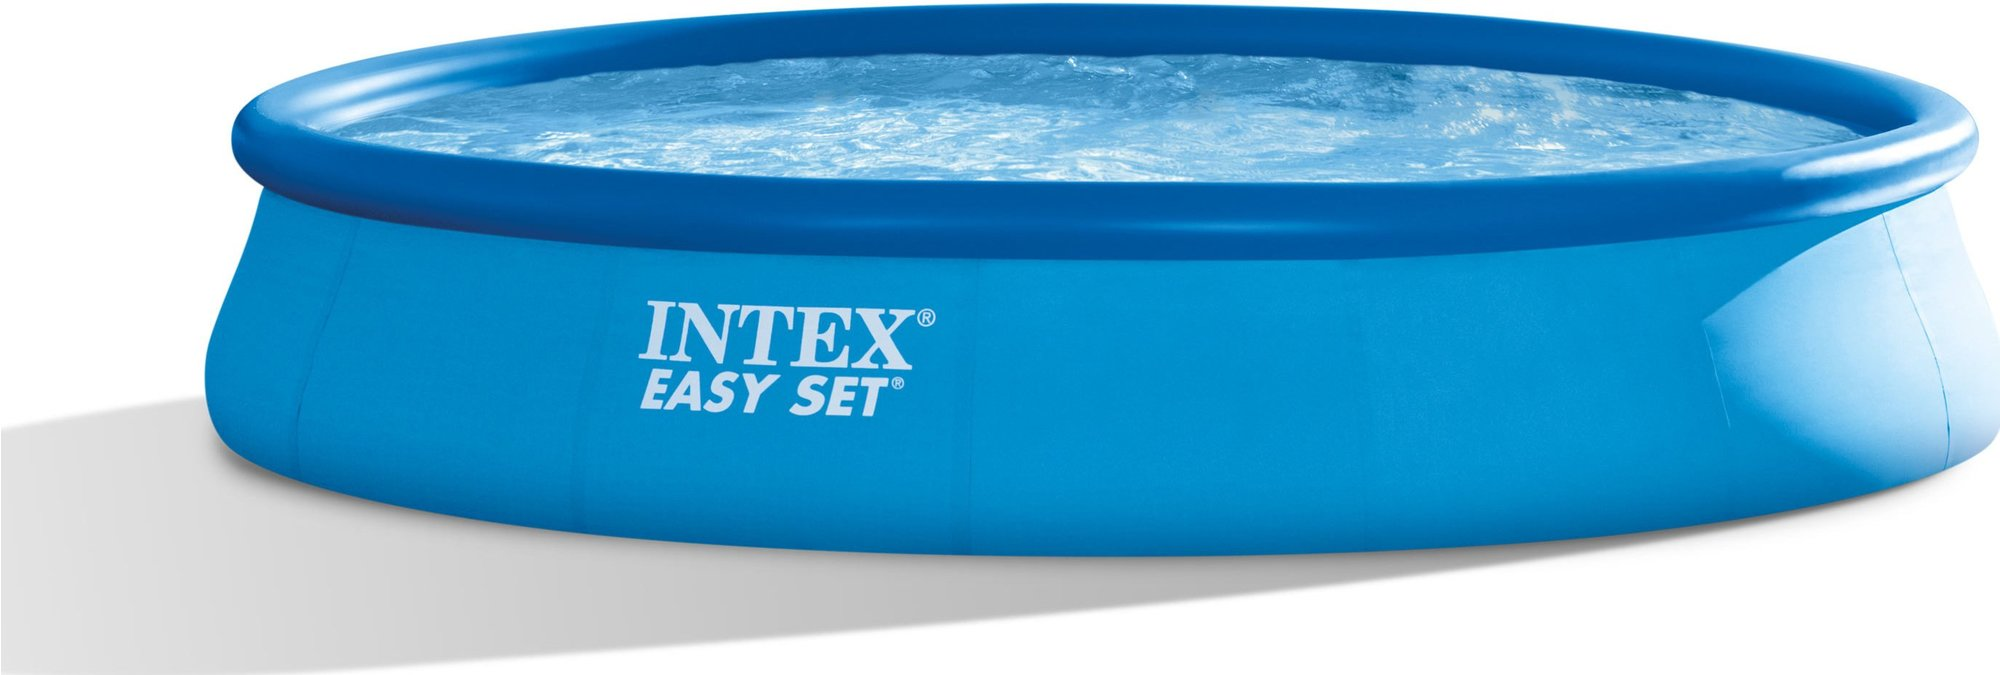 Intex Easy Set Pool 457 cm opblaaszwembad